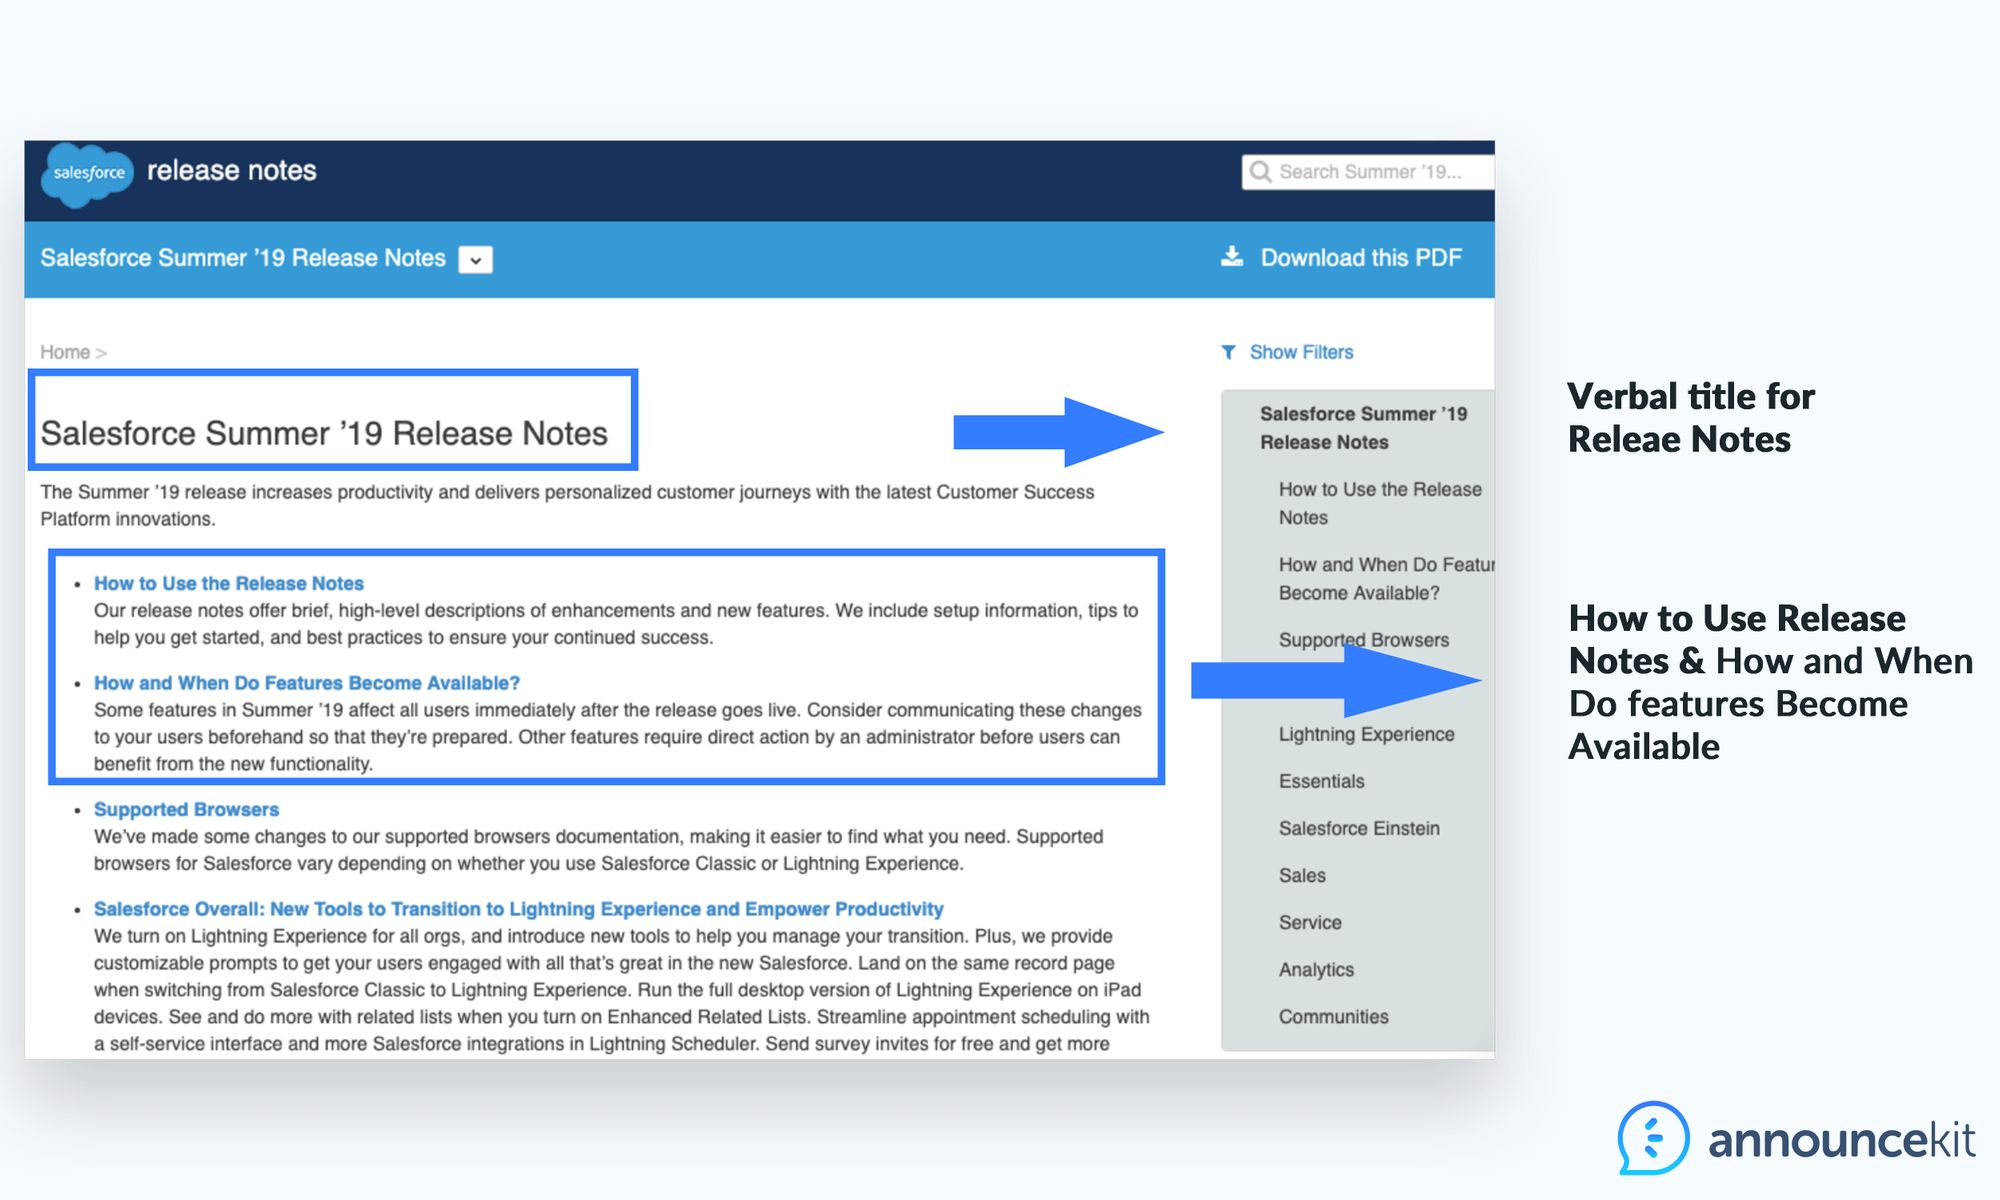 release notes examples and best practises, tools